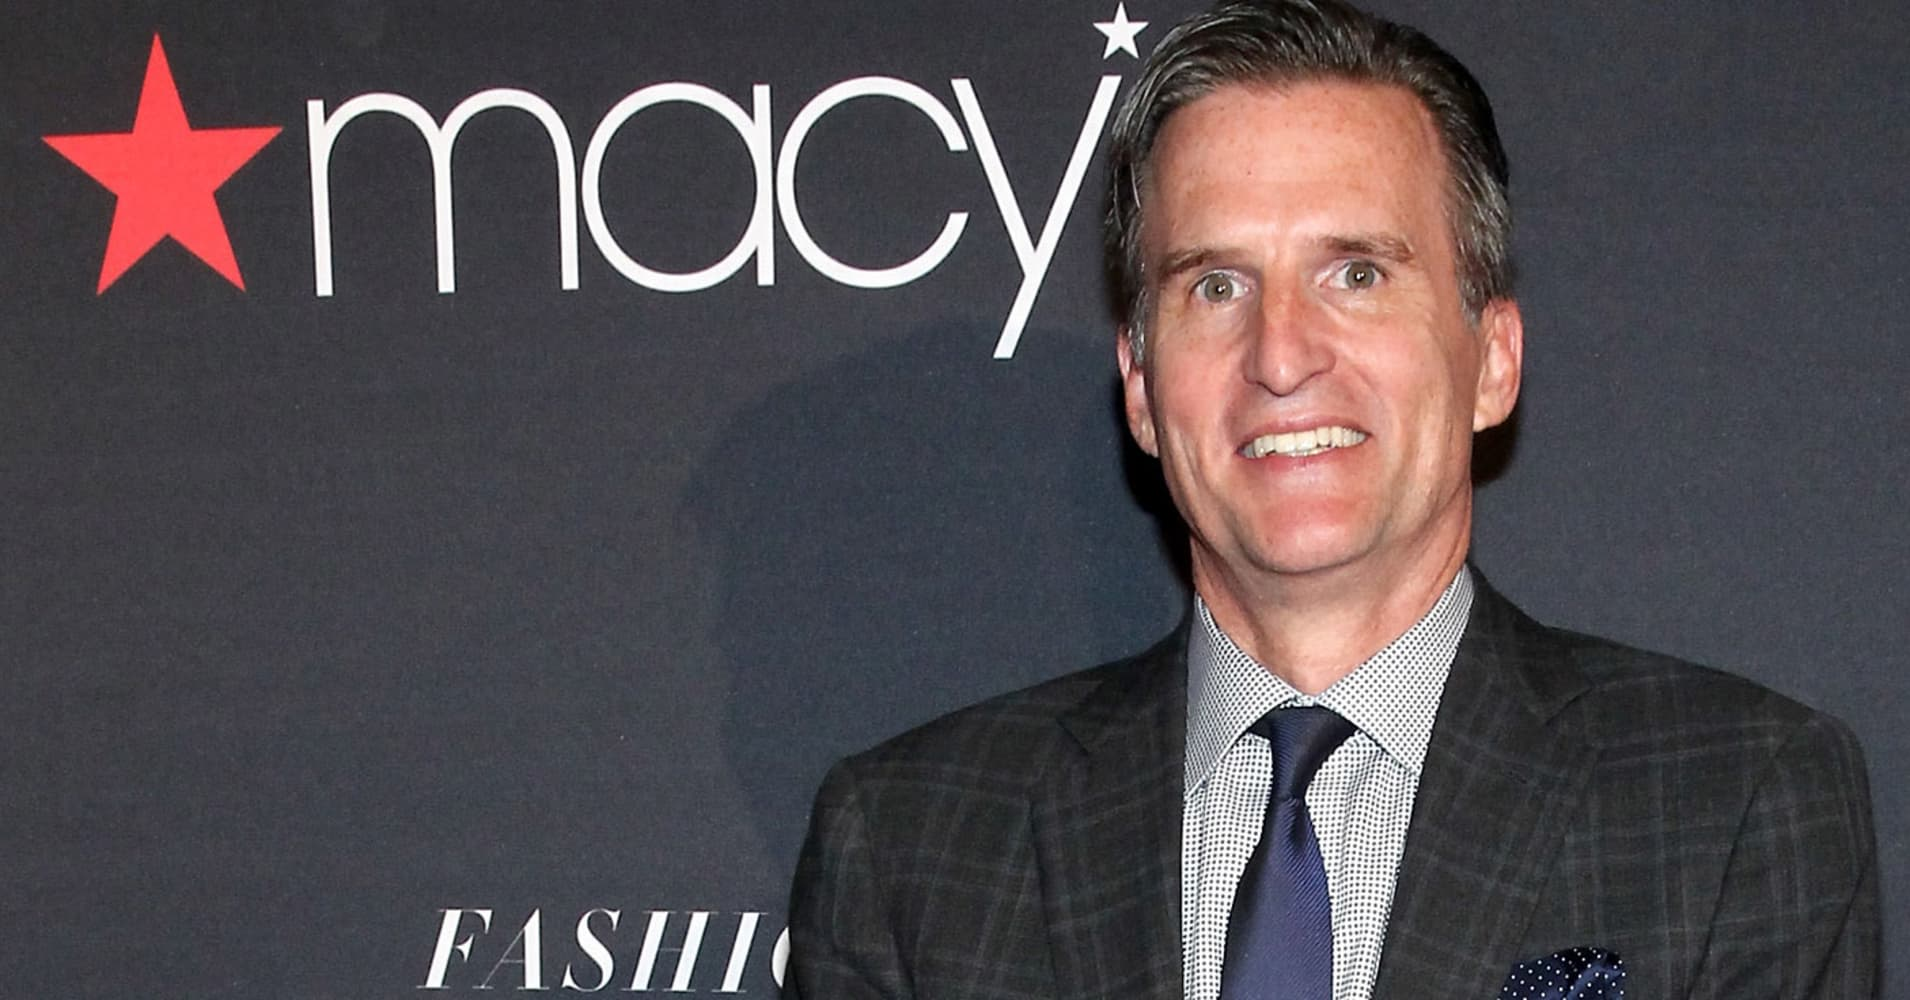 Macy's CEO says the department store is 'prepared and ready' for more tariffs